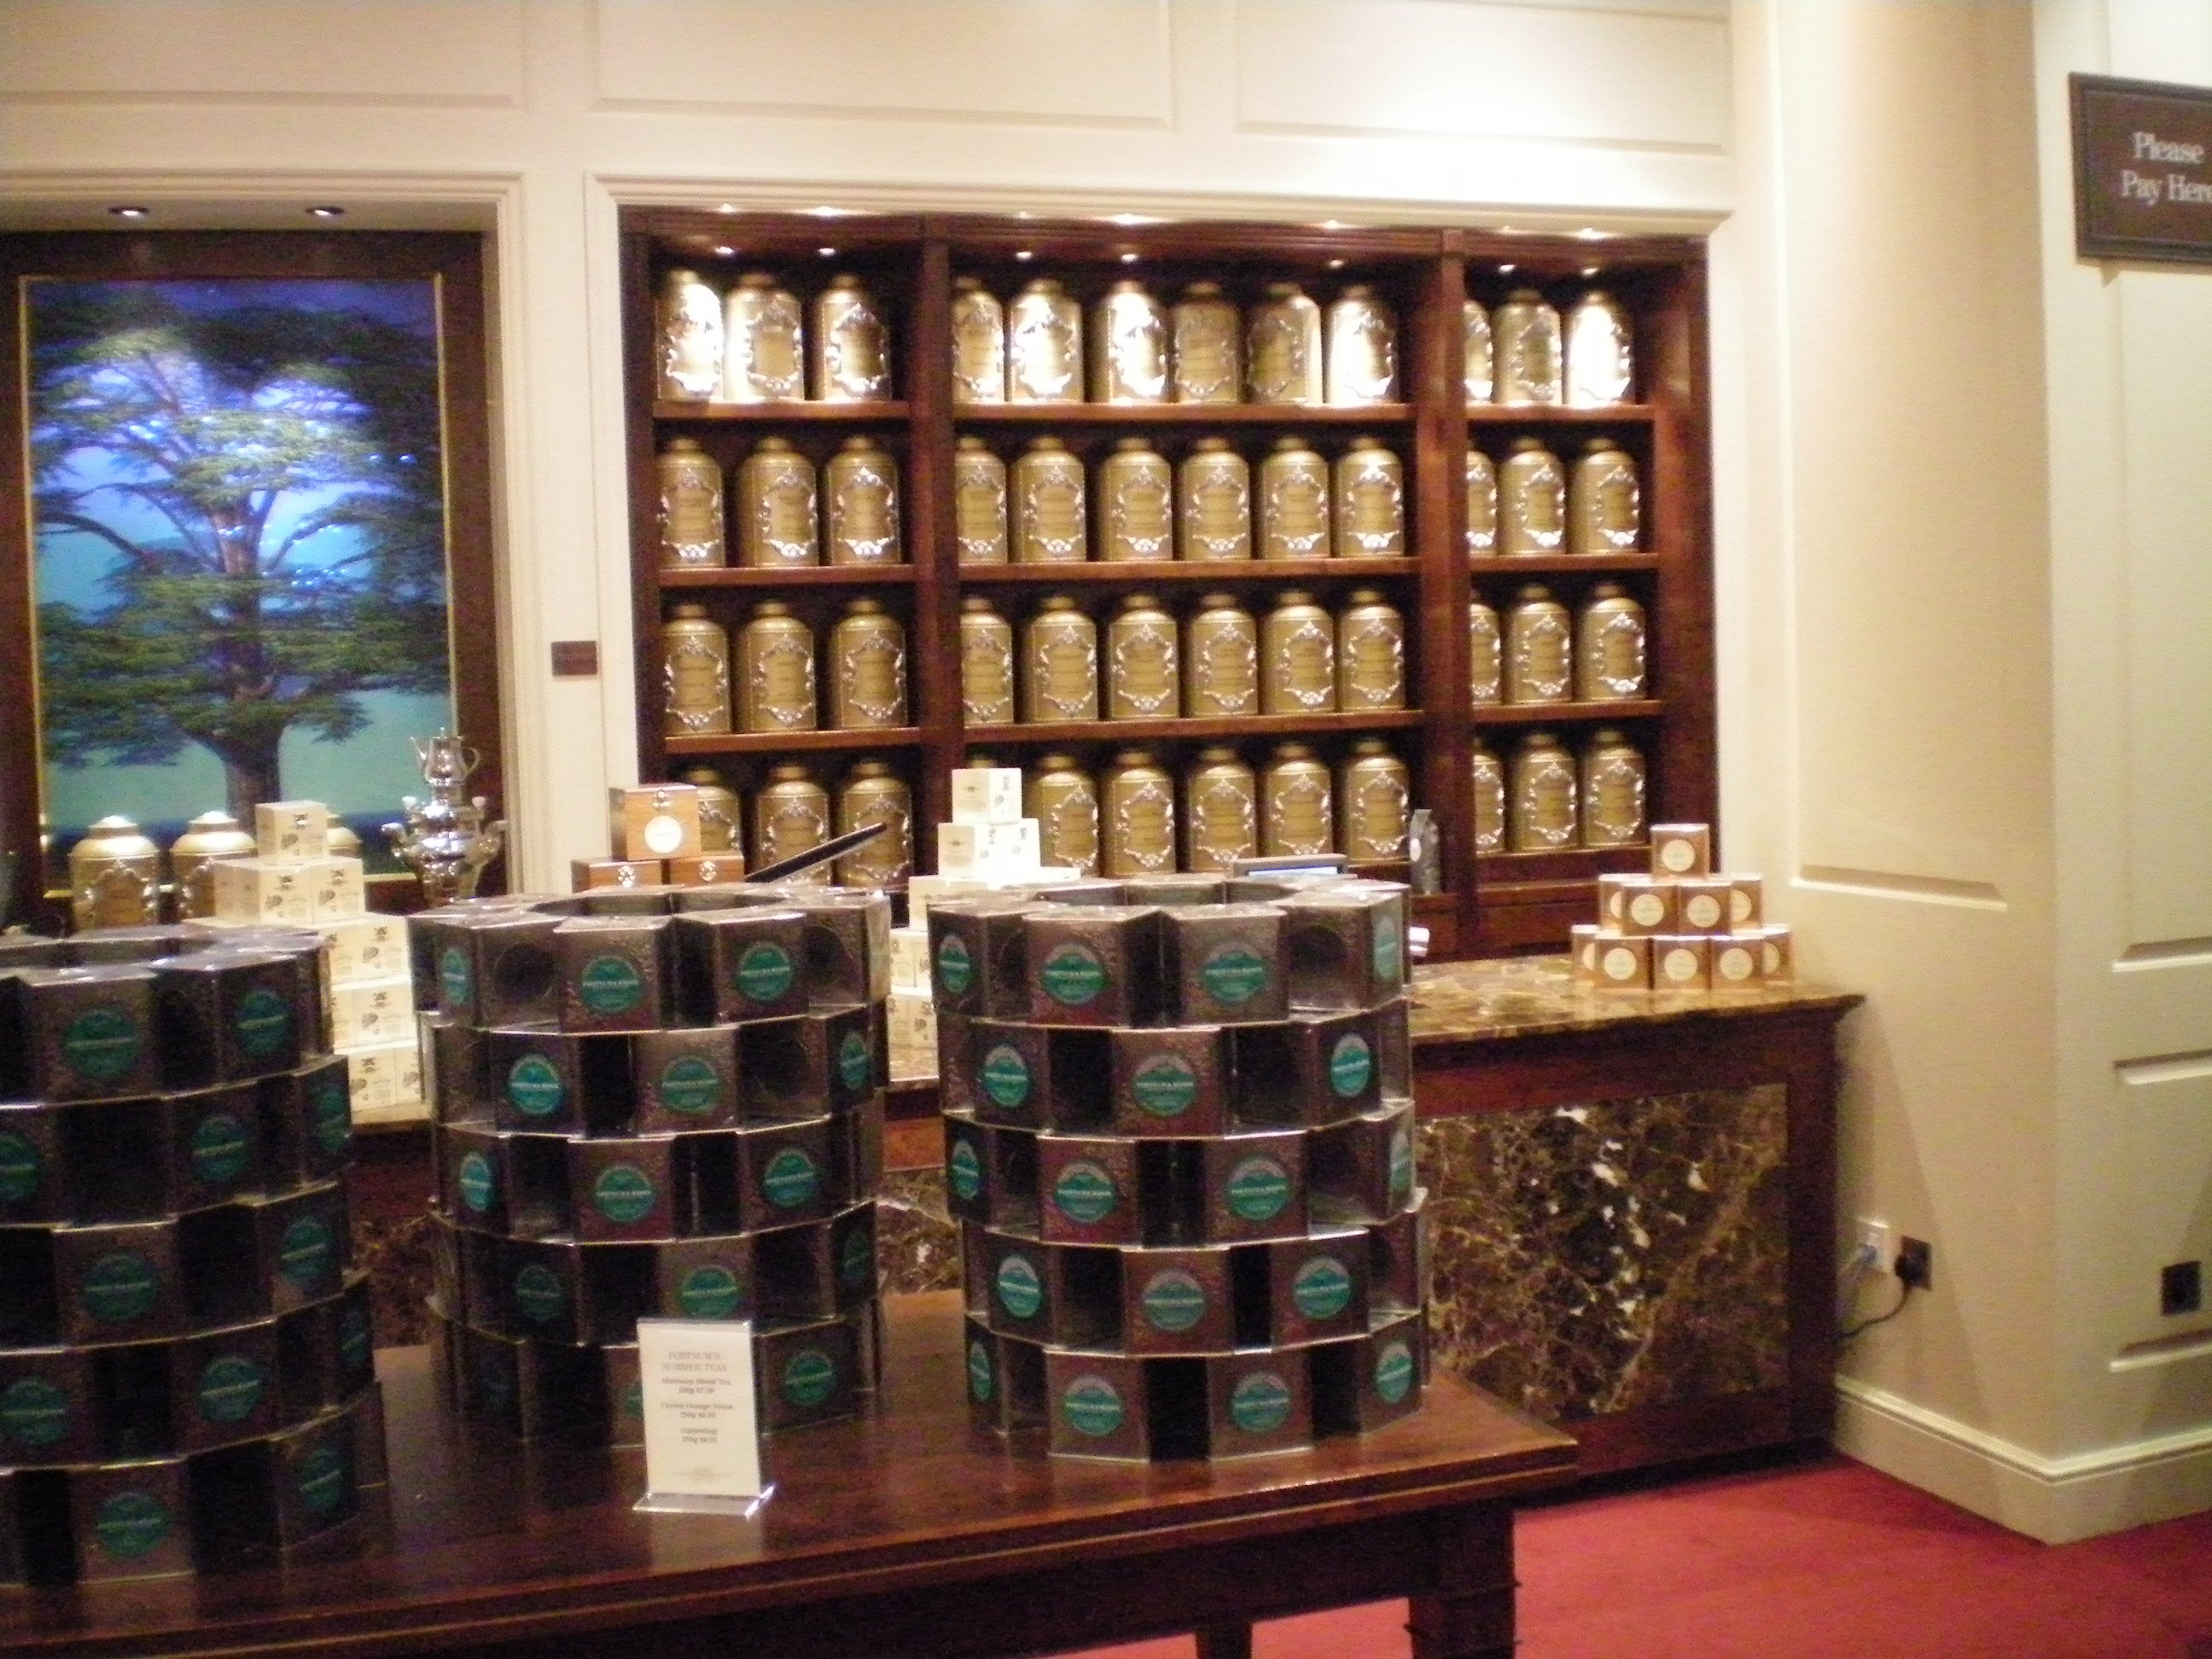 Mueble en Fortnum and Mason